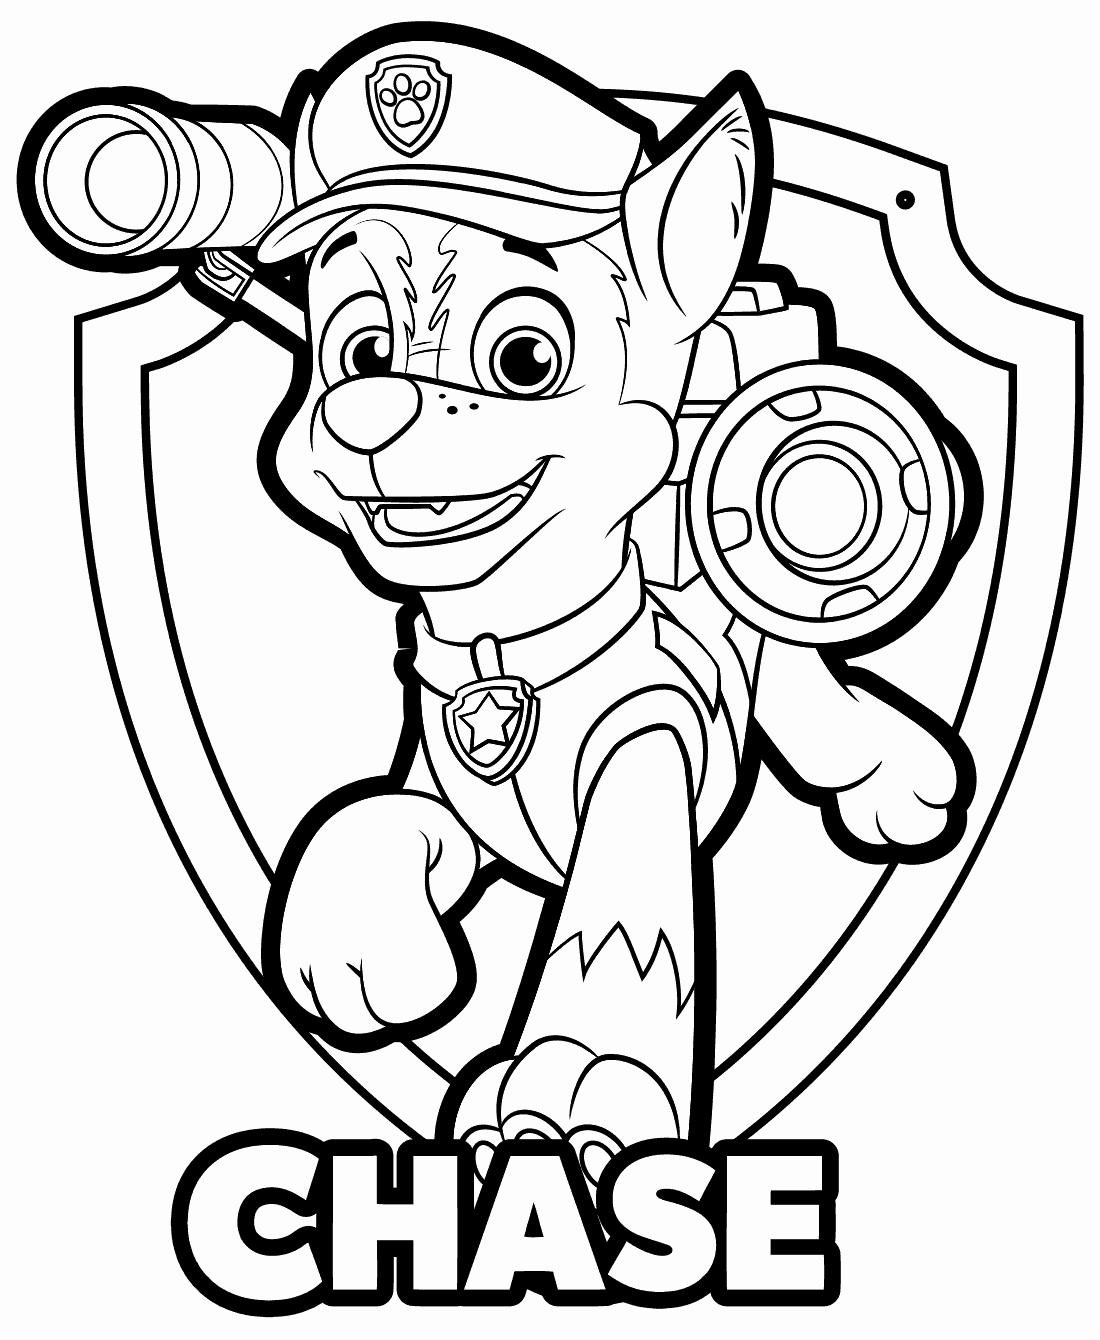 free paw patrol coloring pages chase paw patrol coloring page at getdrawings free download coloring free patrol pages paw